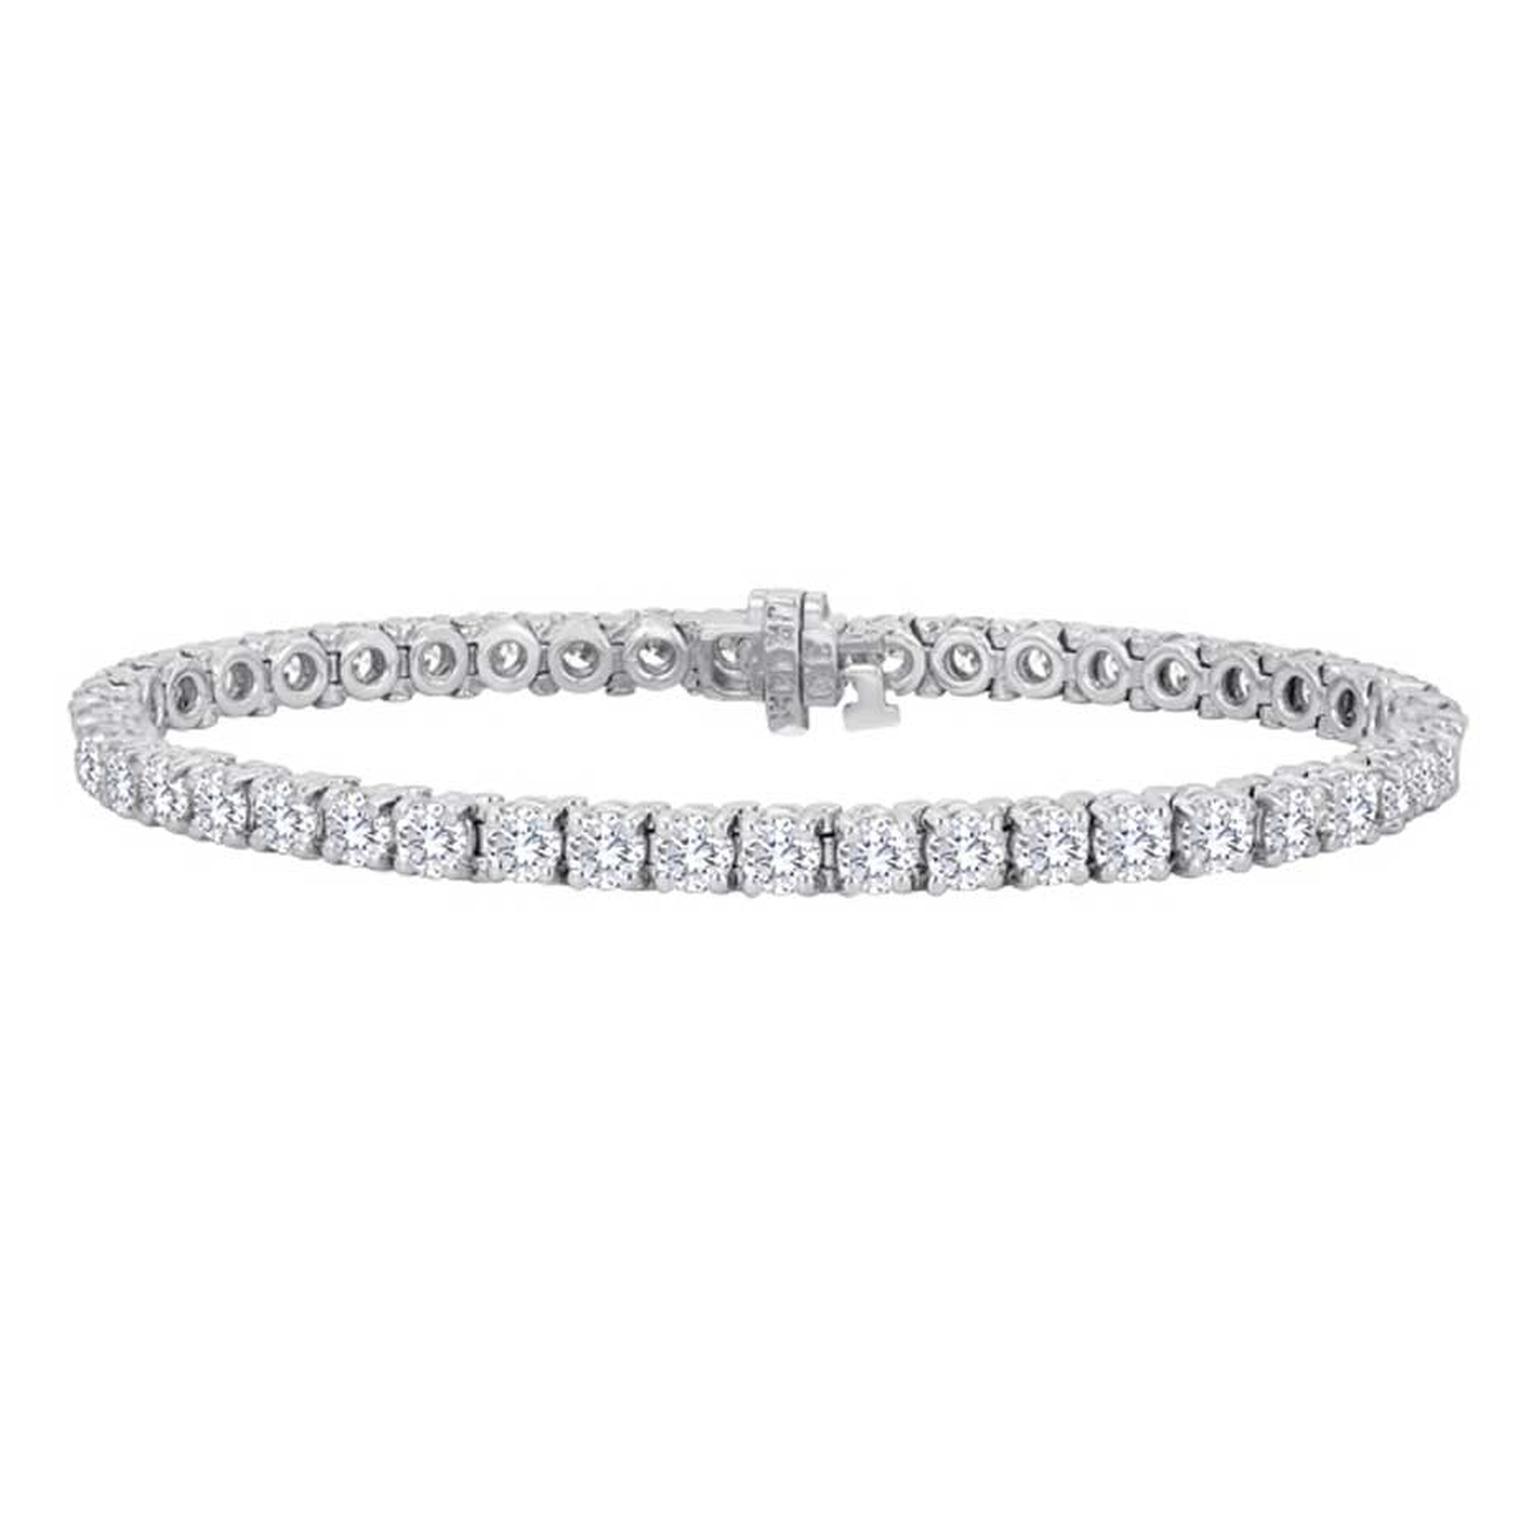 A closer look at the Forevermark Diamond Line Bracelet worn by Kate Hudson.